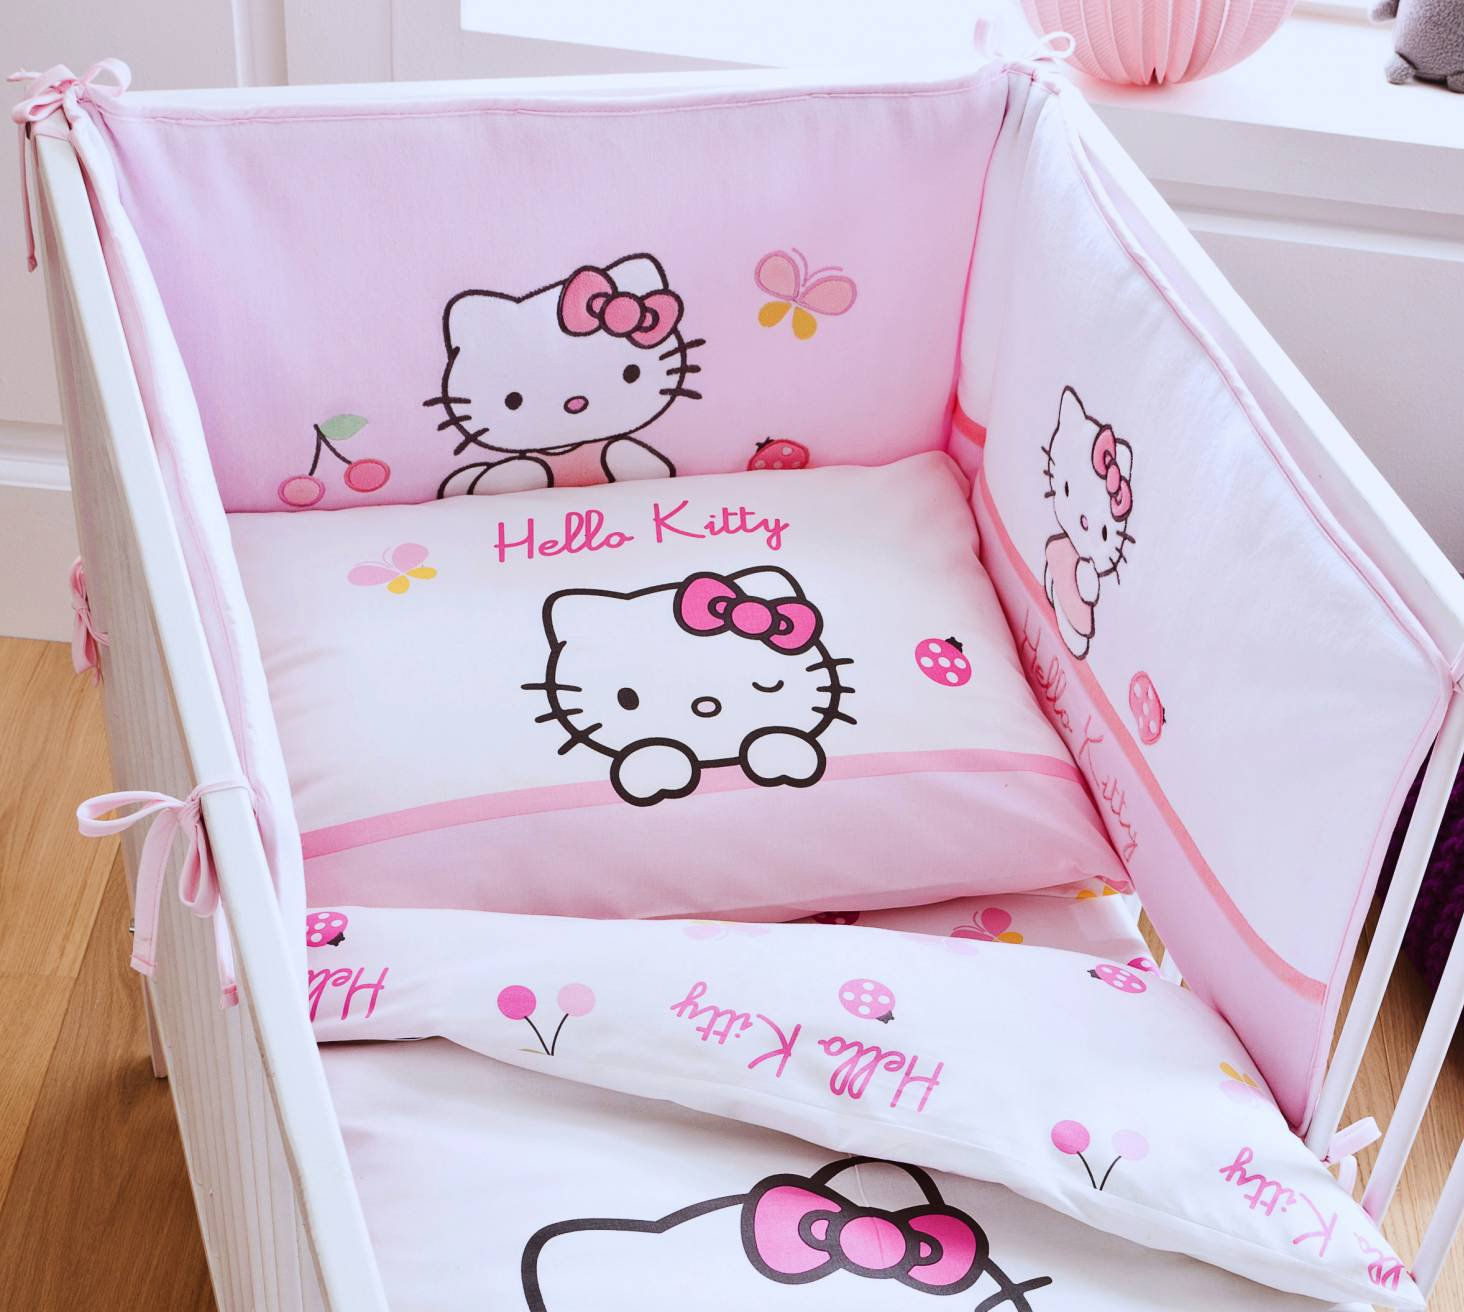 tour de lit hello kitty 40 x 180 cm coccinelle. Black Bedroom Furniture Sets. Home Design Ideas